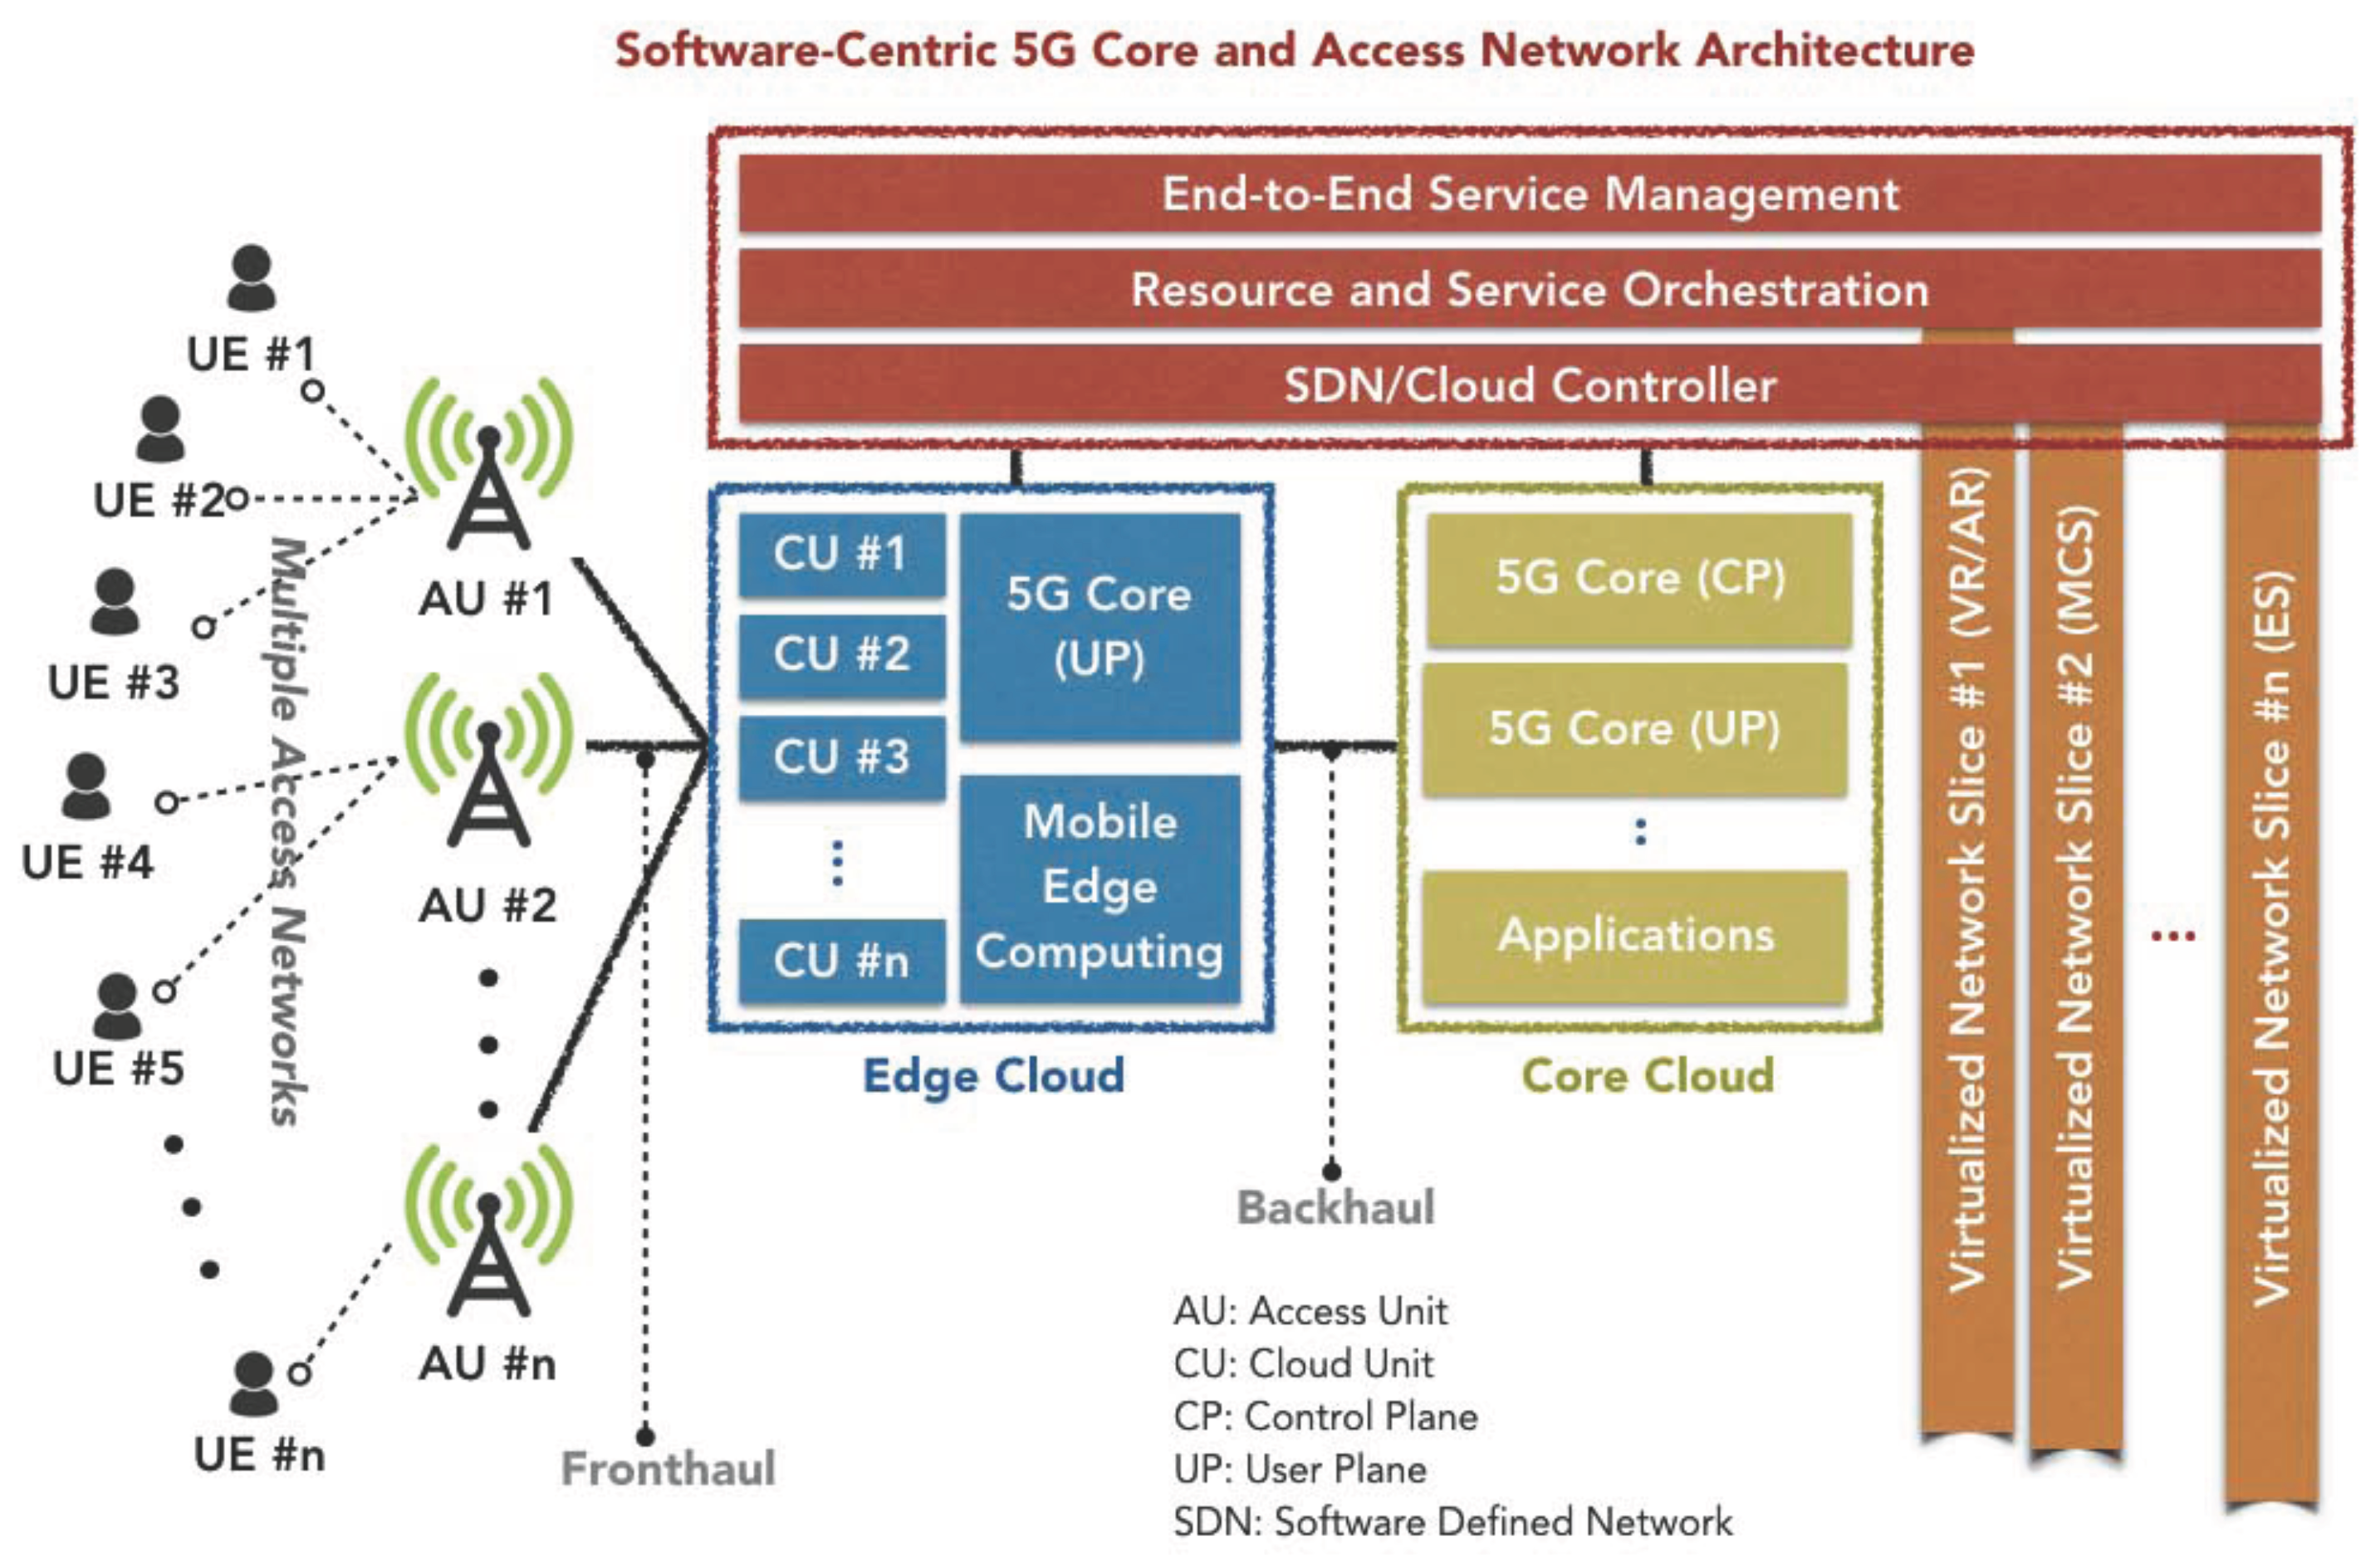 Sustainability Free Full Text What Is 5g Emerging Mobile Core Switch Diagram Http Wwwciscocom En Us Docs Solutions 09 01848 G012